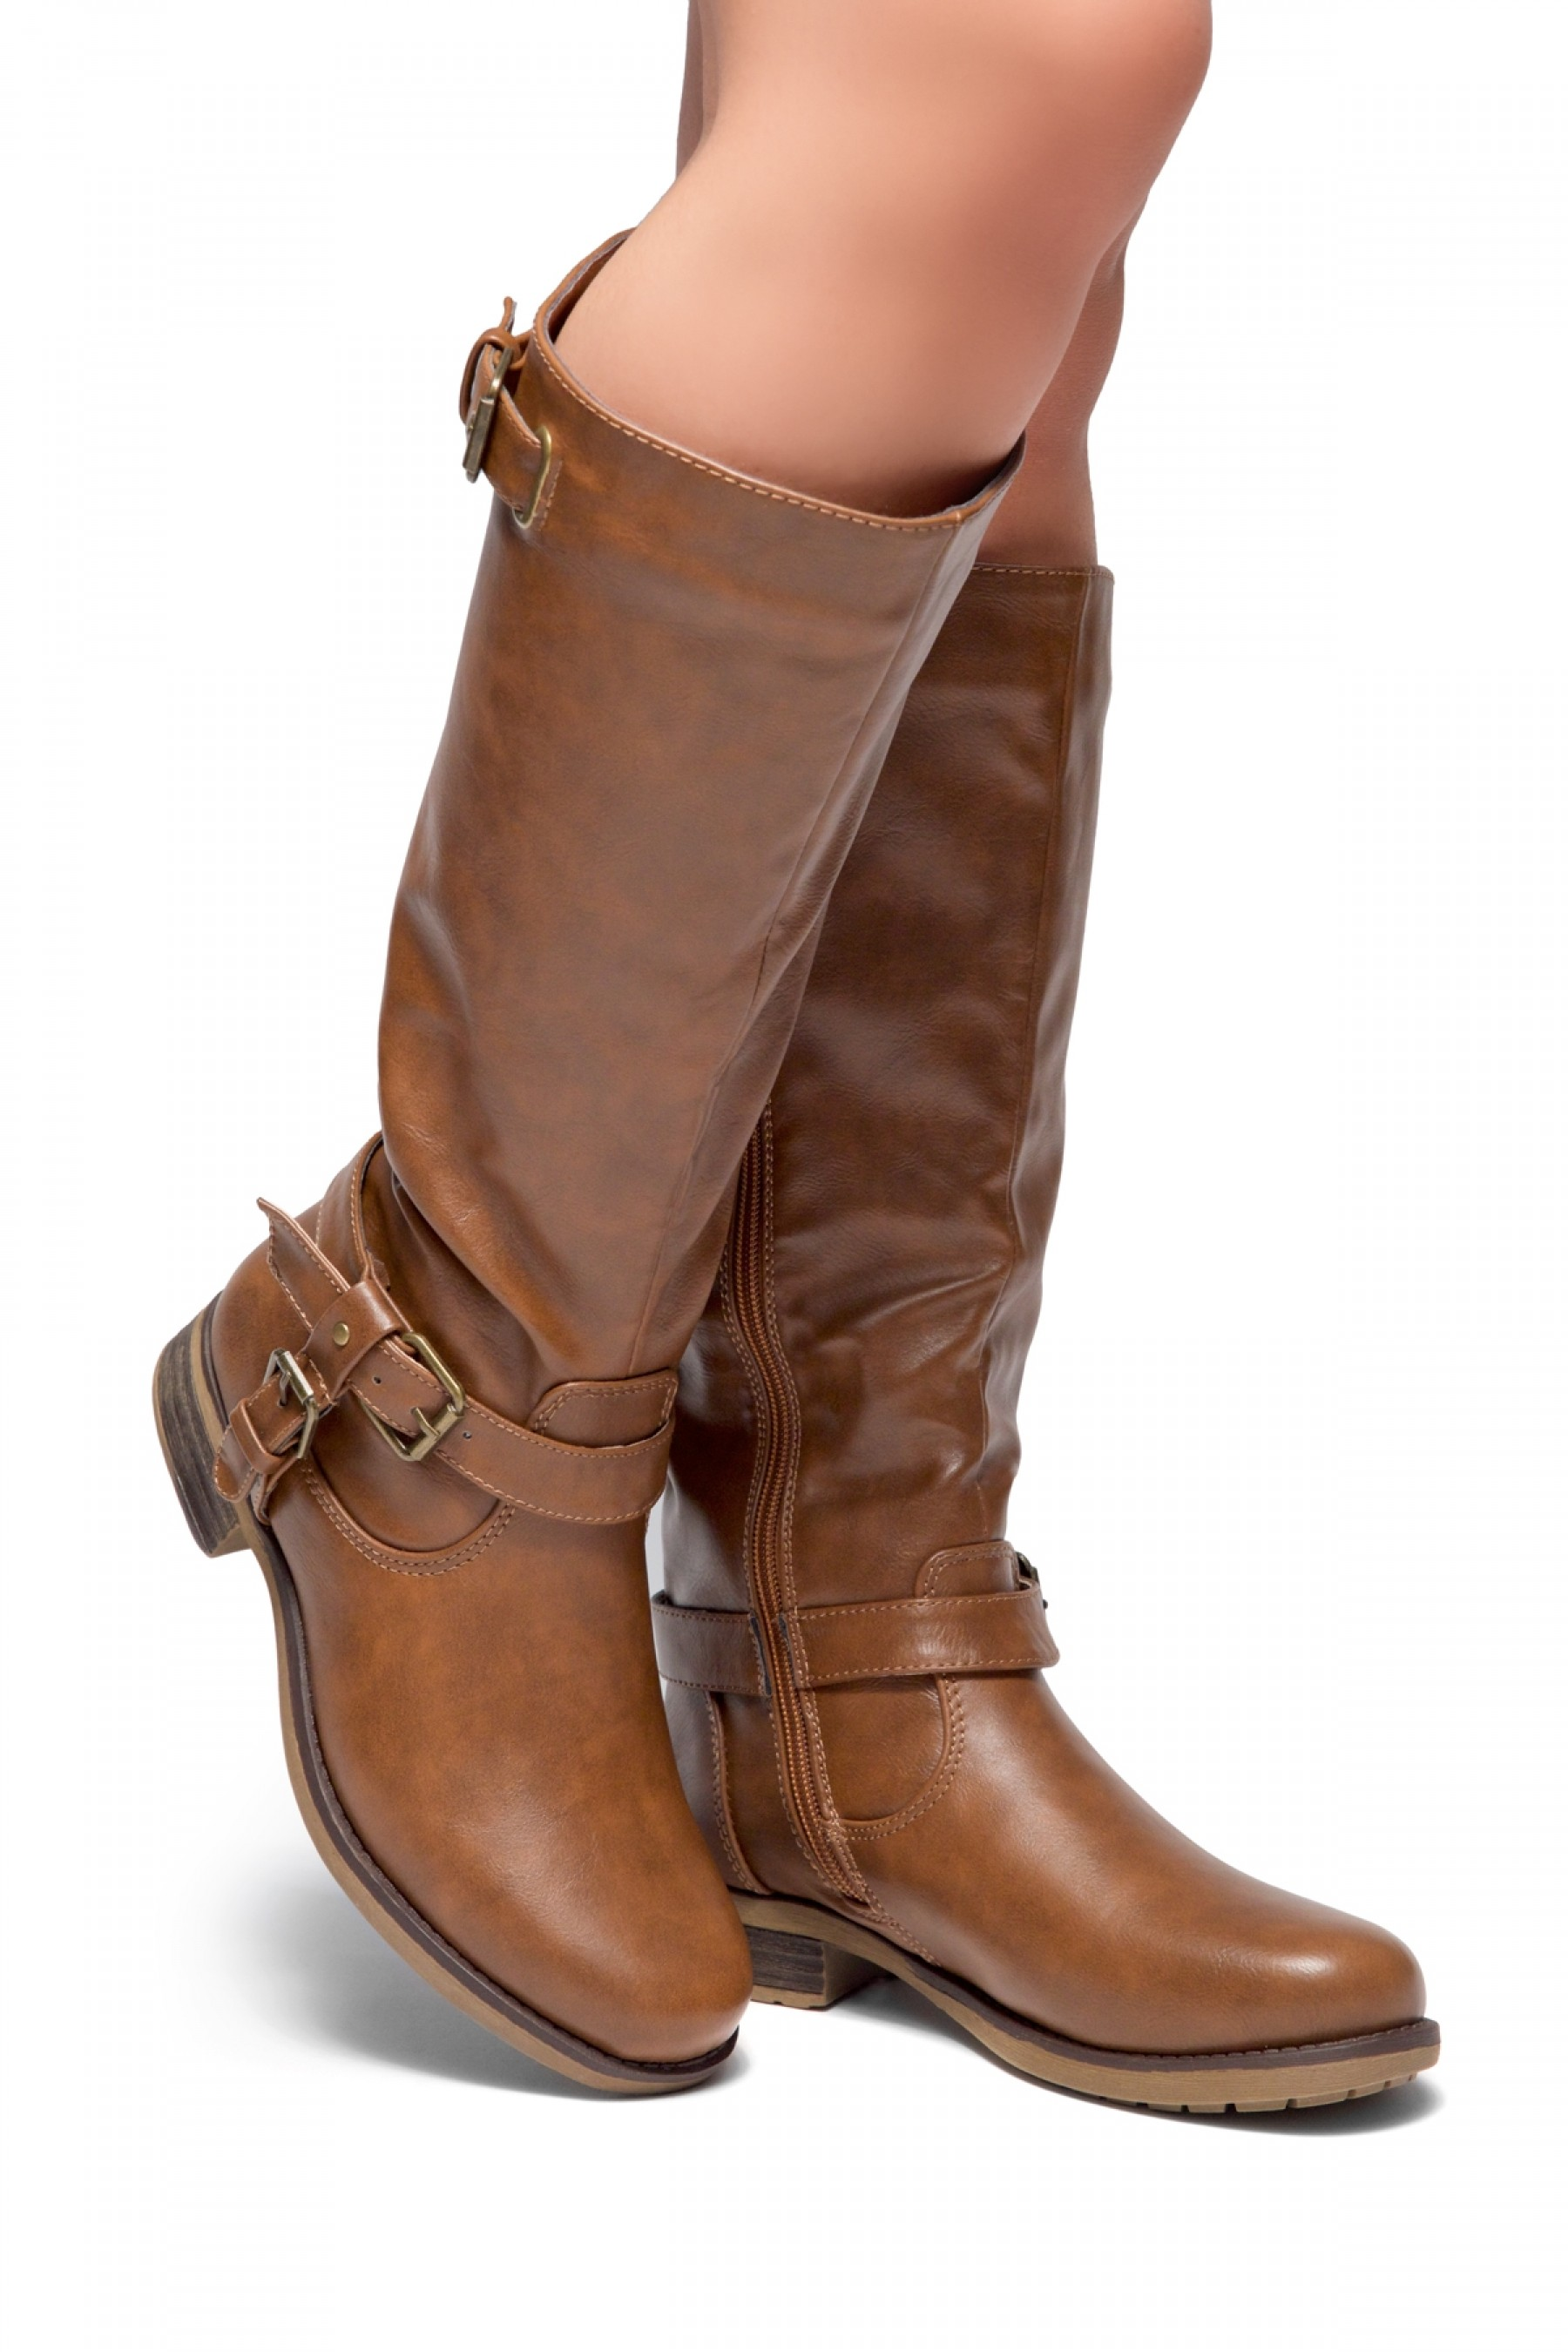 Zayylan Brown Riding Knee high Boots